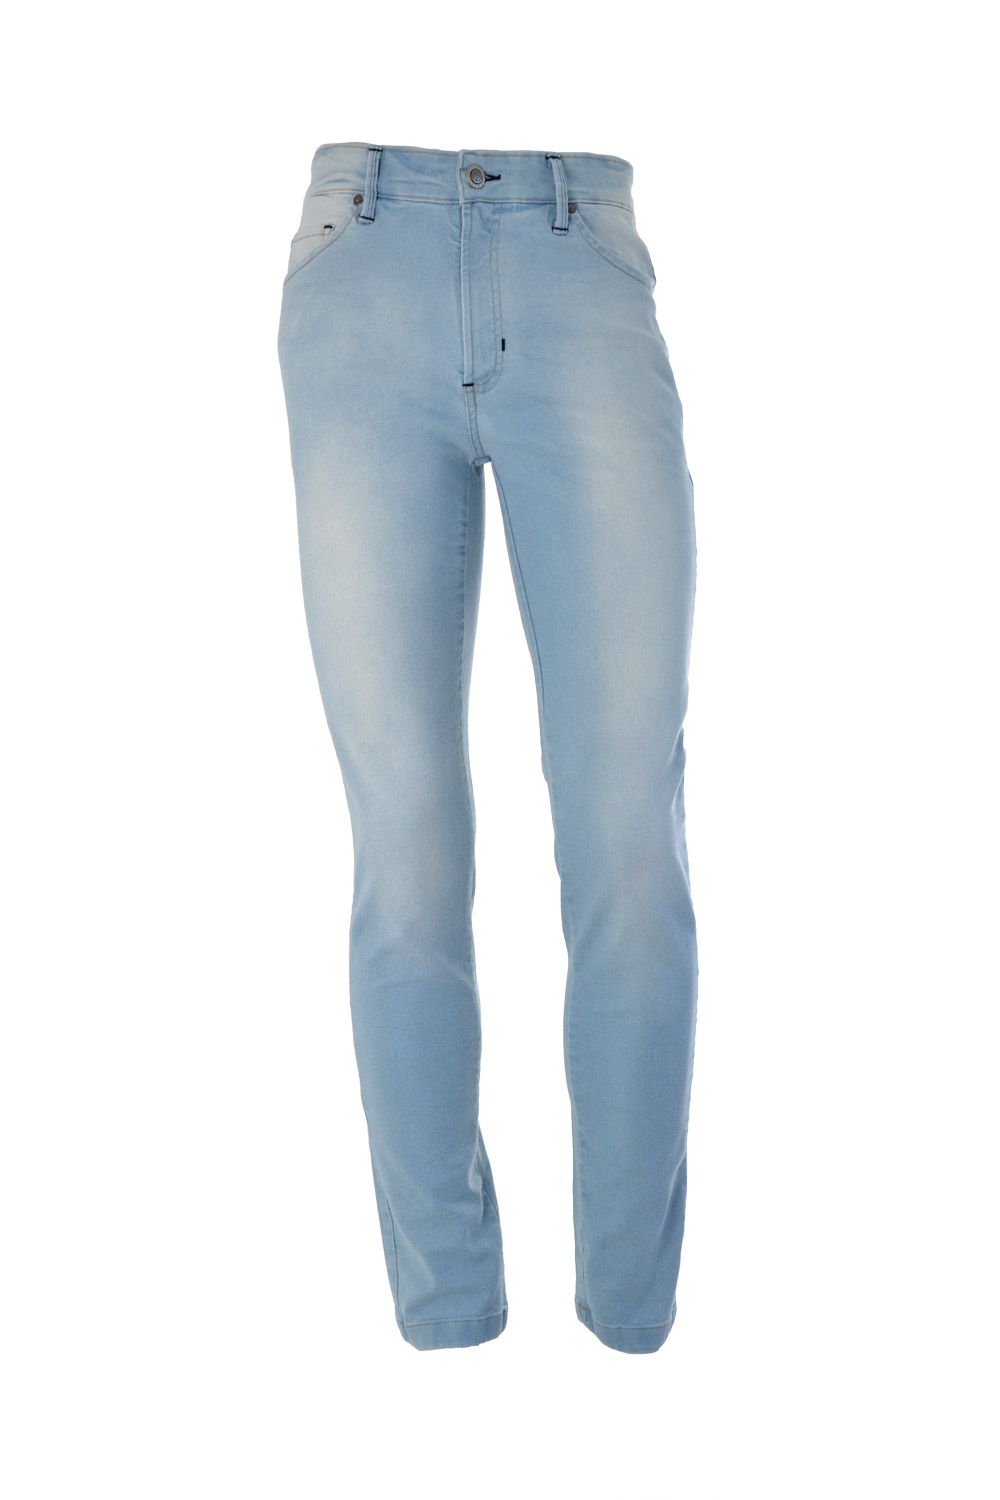 CALÇA JEANS BLUES POLIALGODAO & ELASTANO 5 POCKETS STONED LIGHT